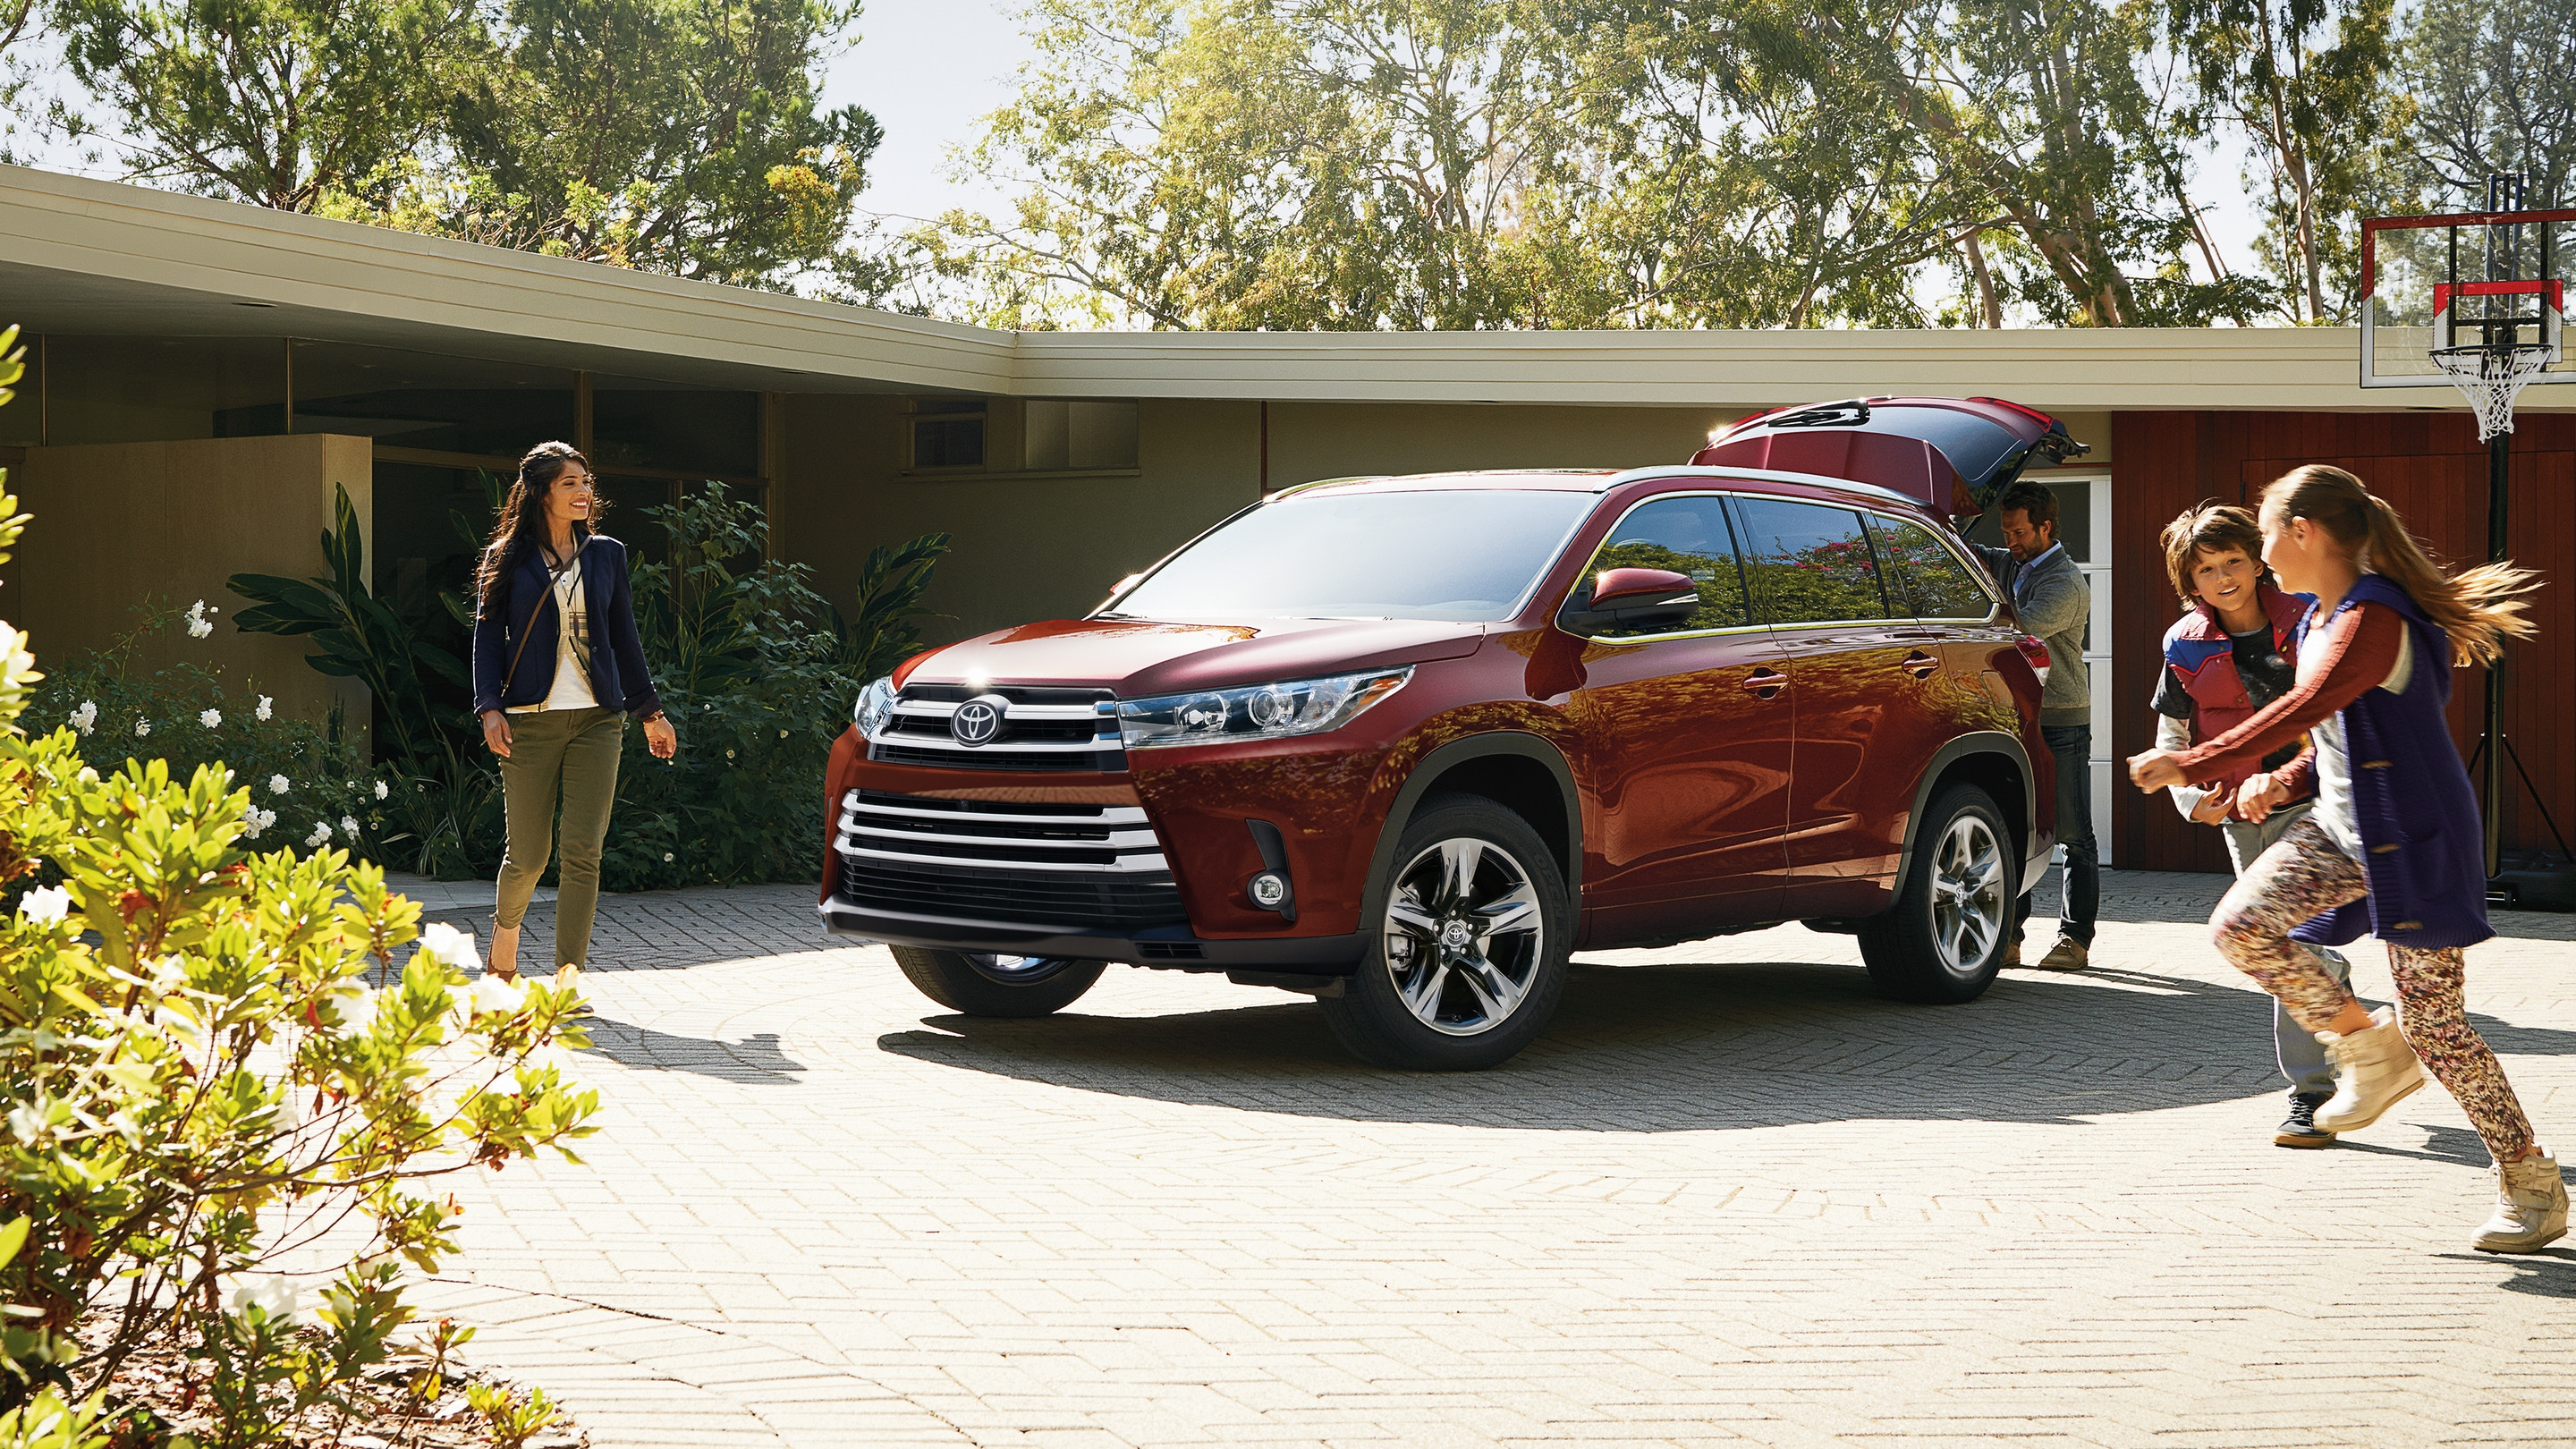 2019 Toyota Highlander vs 2019 Subaru Ascent in Newark, DE